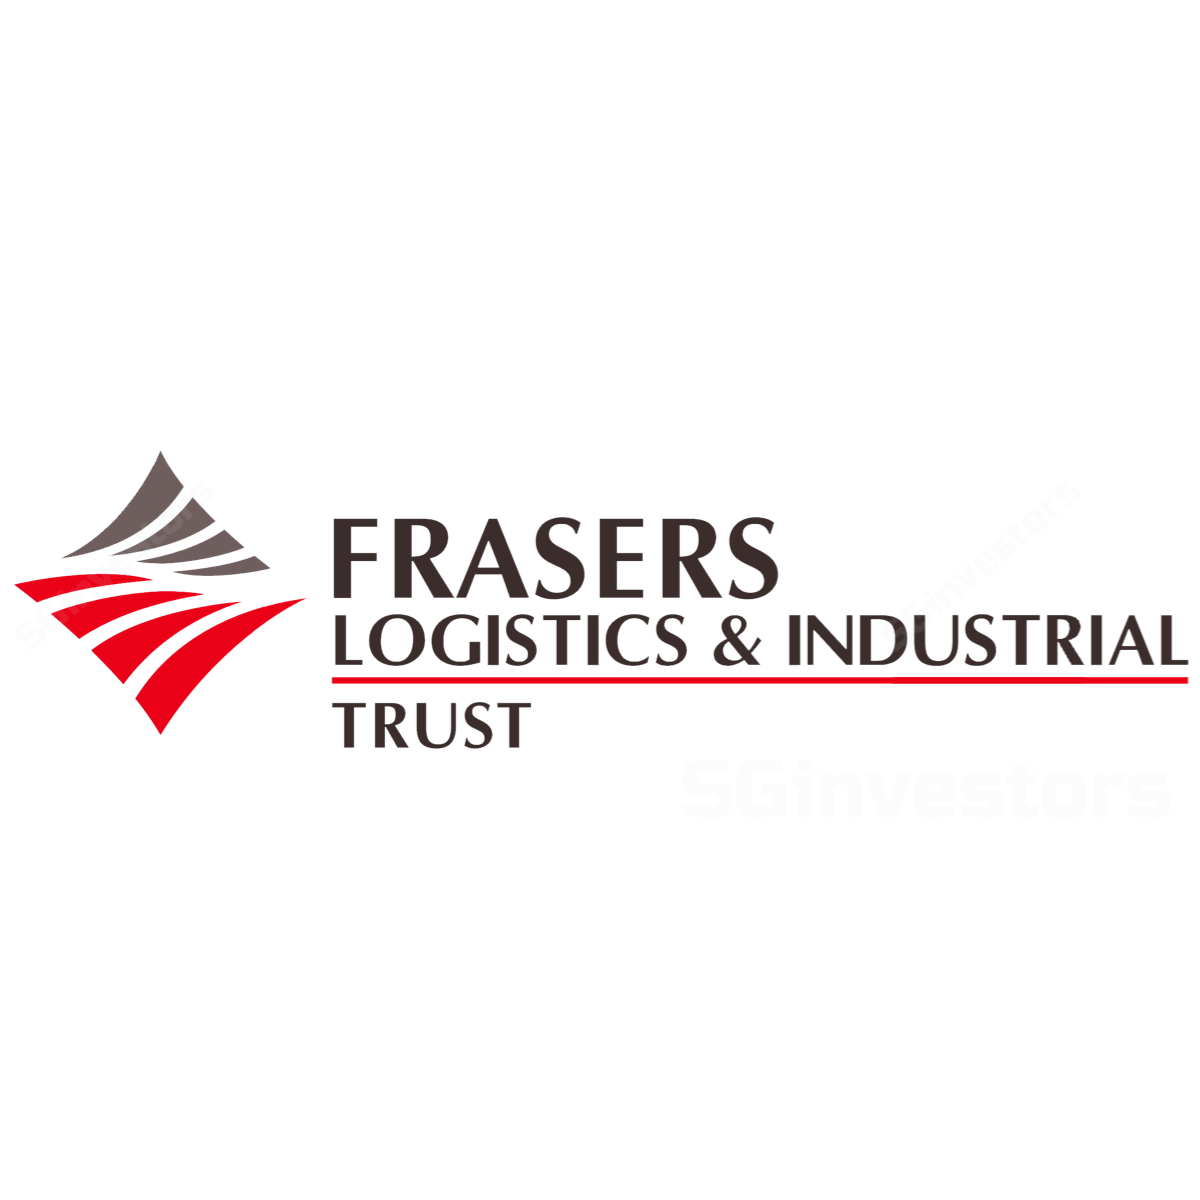 Frasers Logistics & Industrial Trust - CIMB Research 2017-06-07: Strengthening Its Core